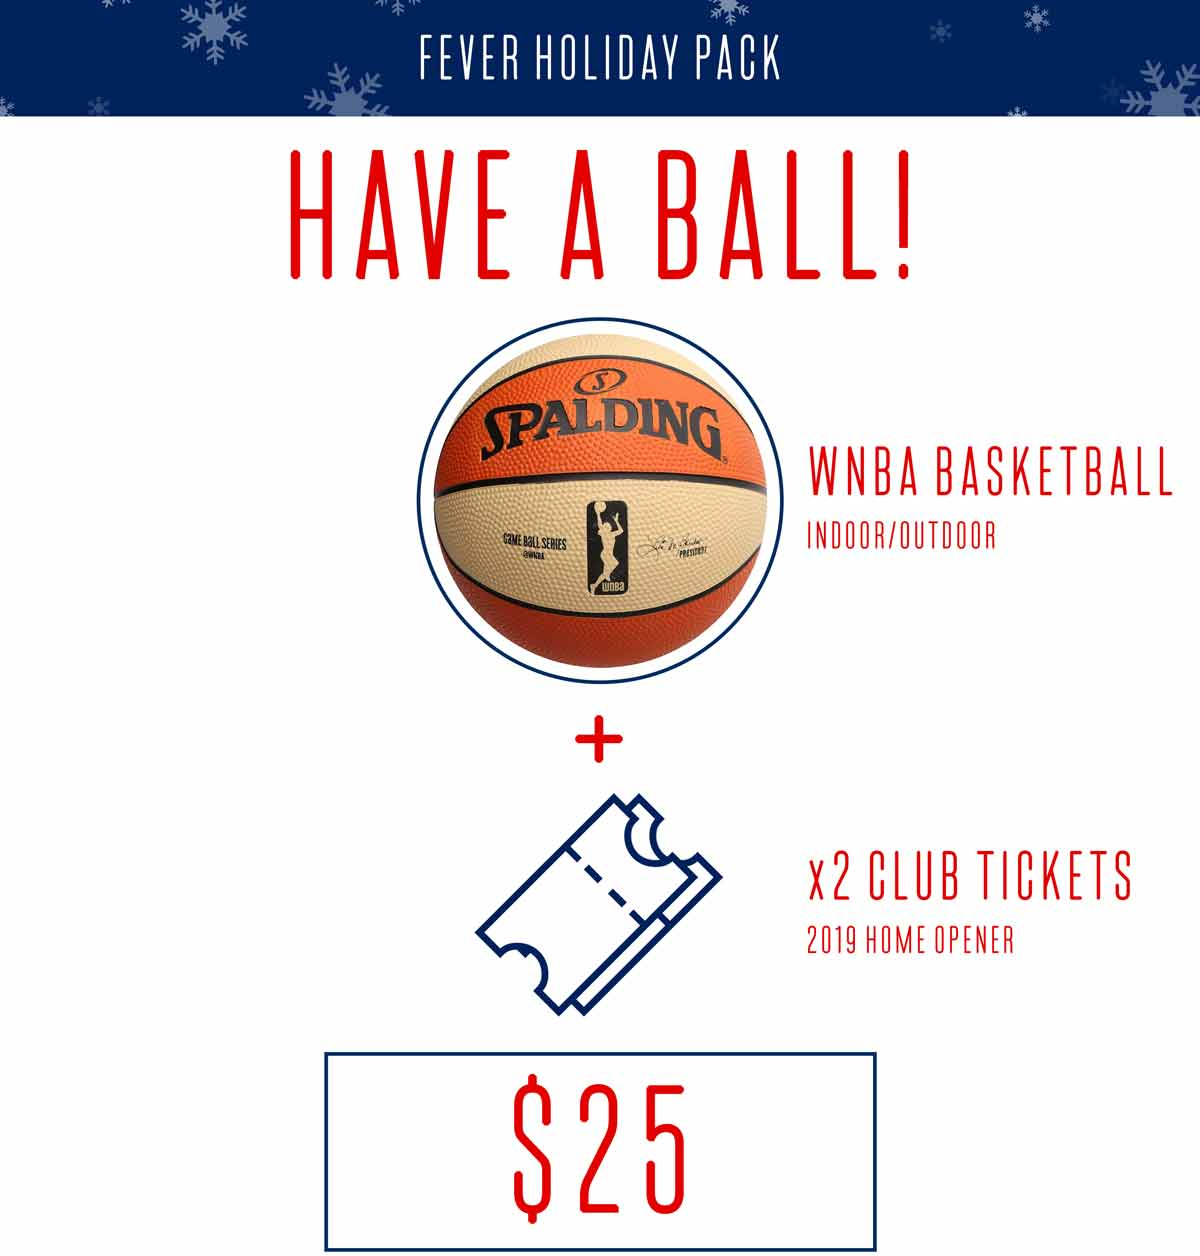 Have a Ball! WNBA Basketball plus Two Club Tickets for $25